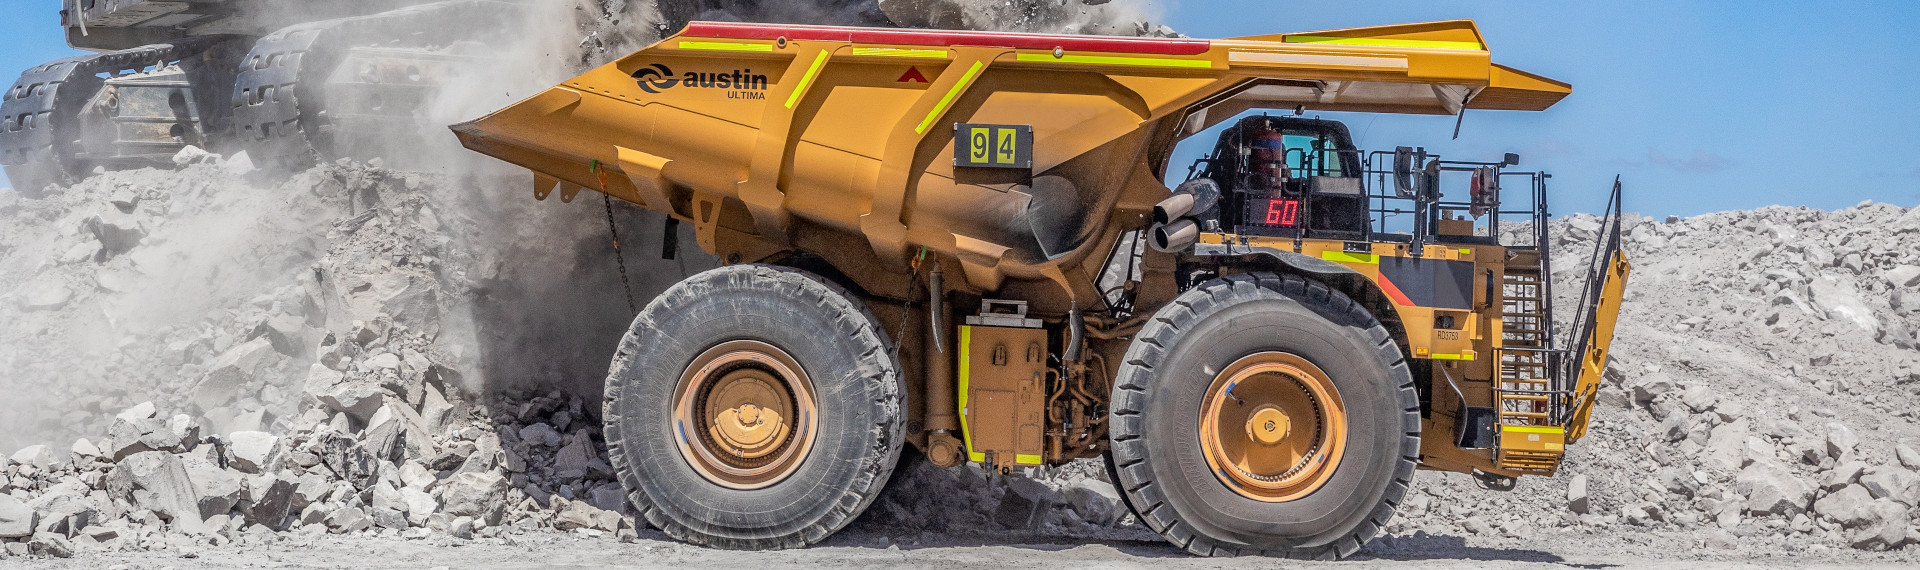 Austin's supersized mining truck, which weighs 25% less thanks to Hardox® 500 Tuf